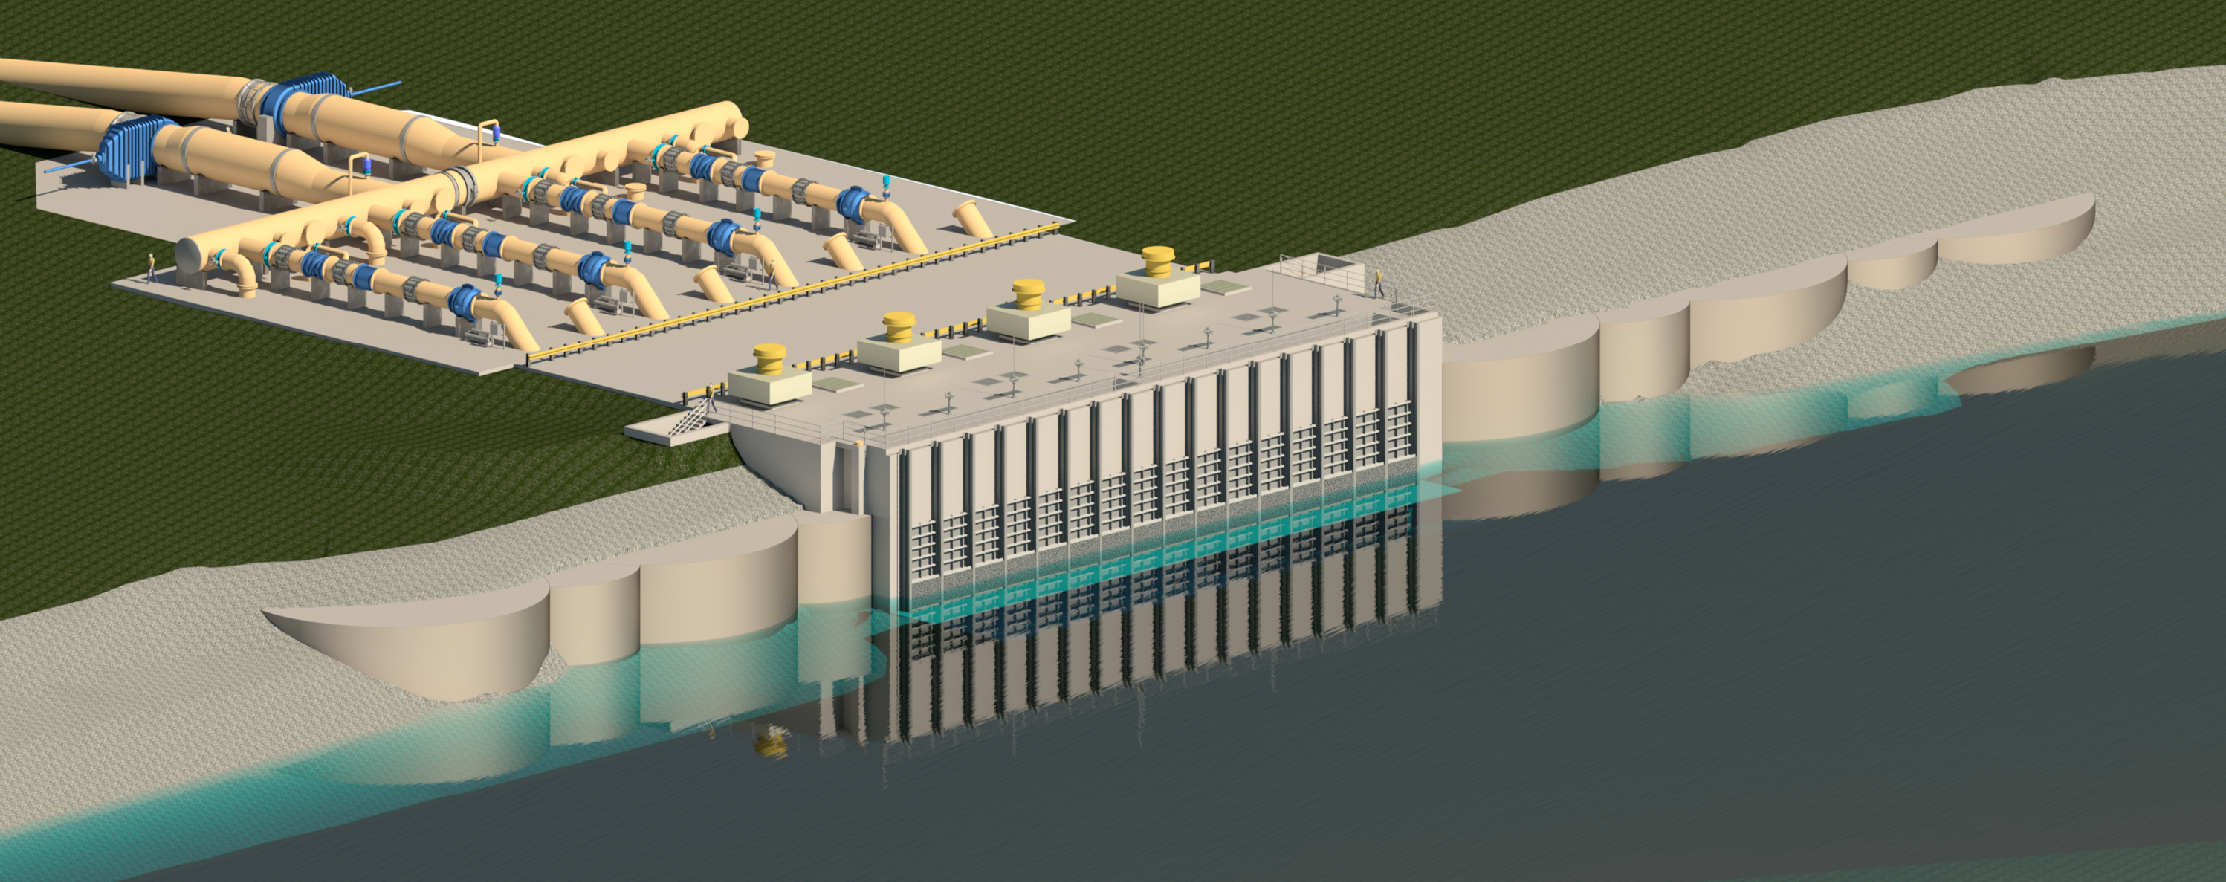 CWA Capers Ridge Intake Structure and Pump Station Rendering